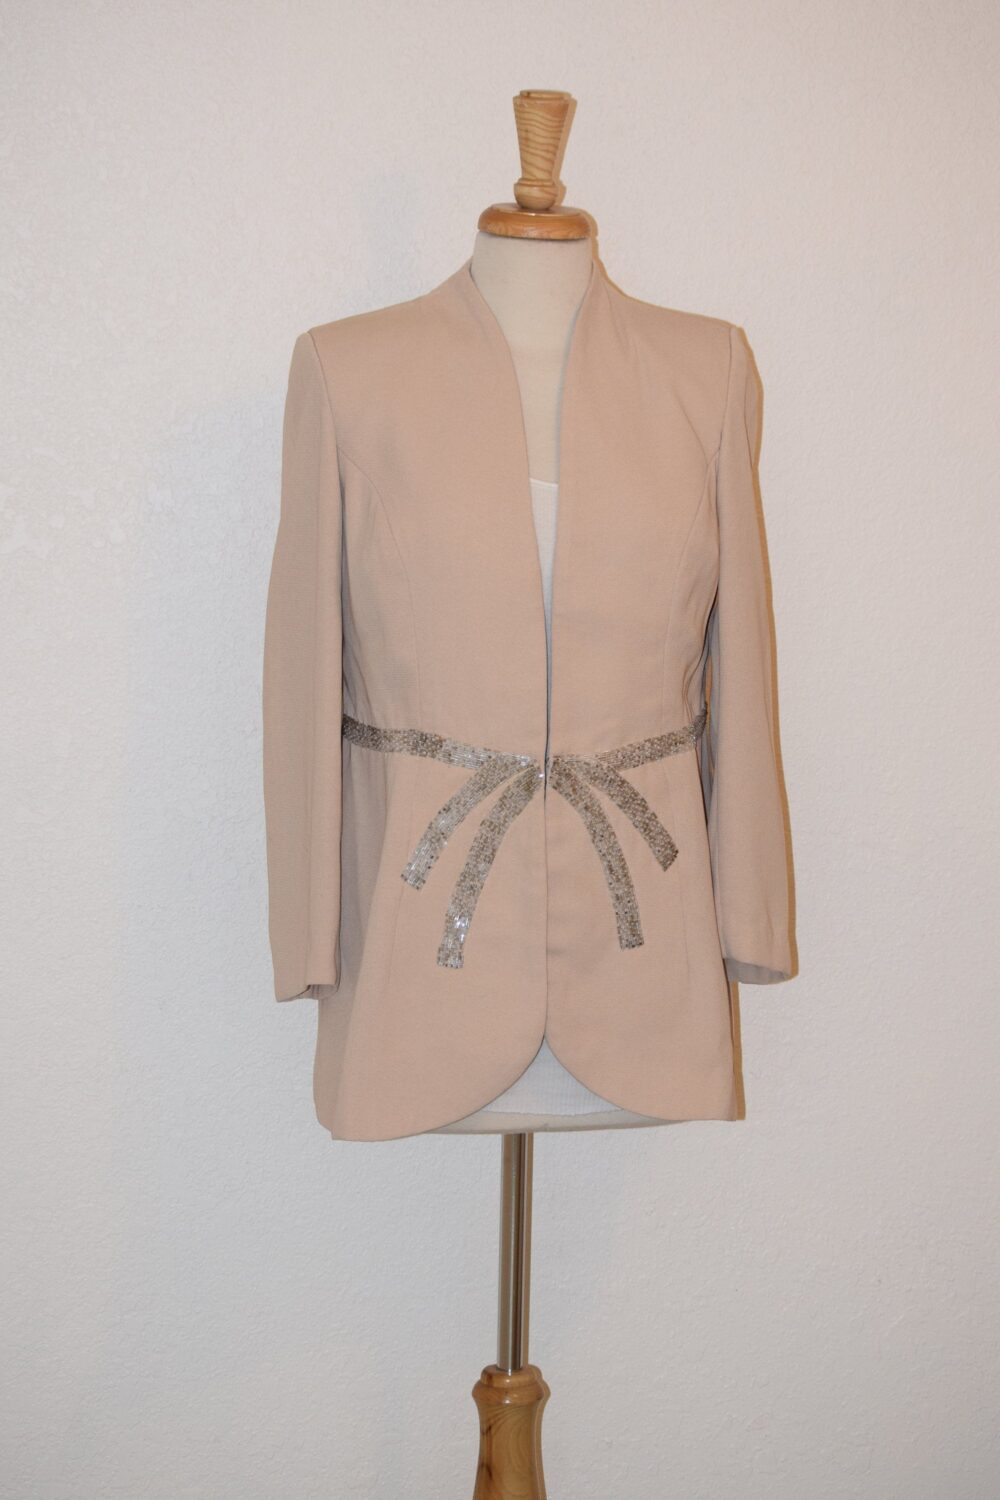 Beautiful Blush Crepe De Chine Fitted Jacket/Coat Blazer With Beaded Waist Detail Wedding /Tuxedo Style - Women's Medium